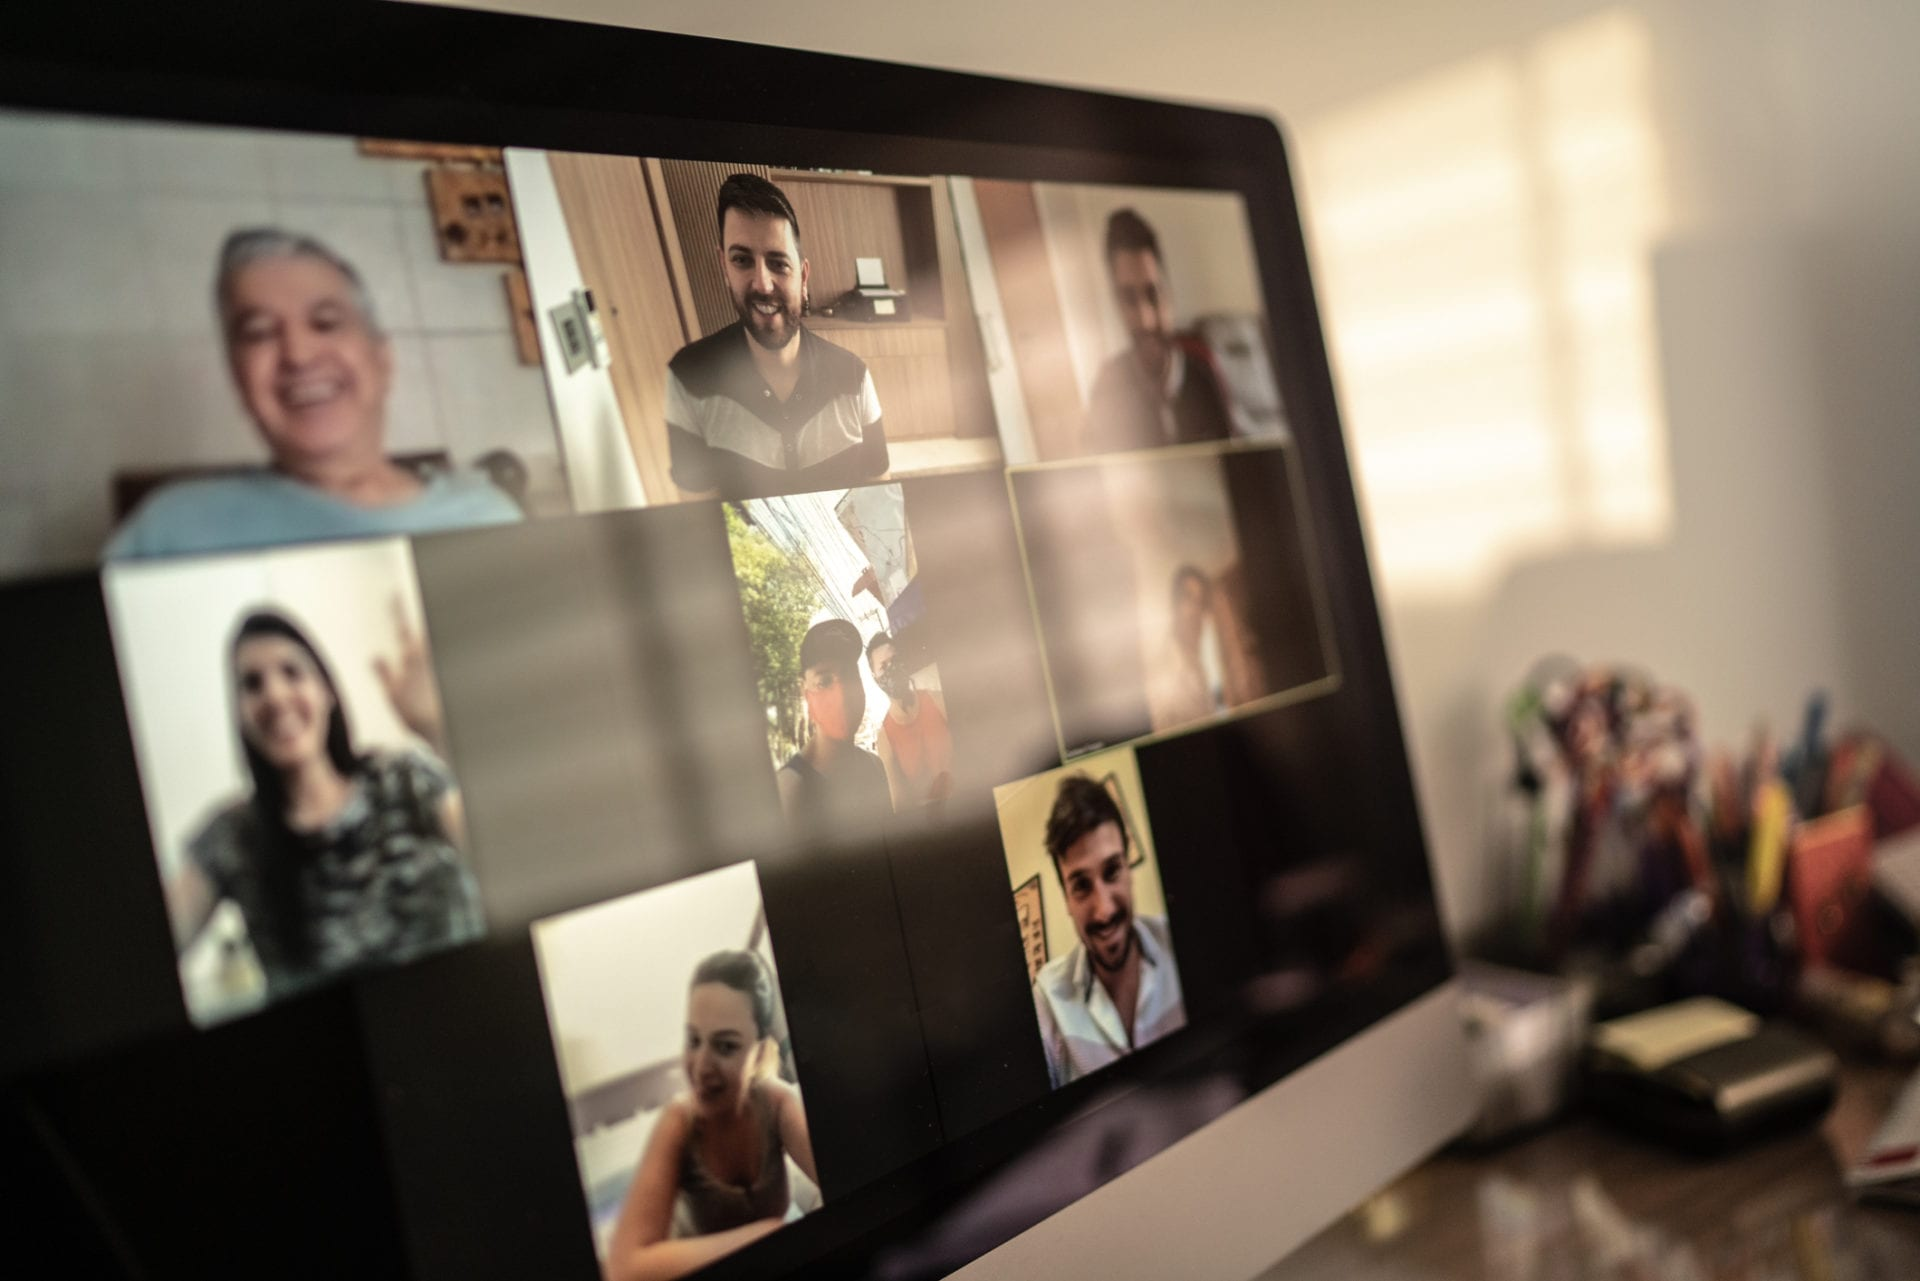 video chat on monitor representing TMRE 2020 virtual conference